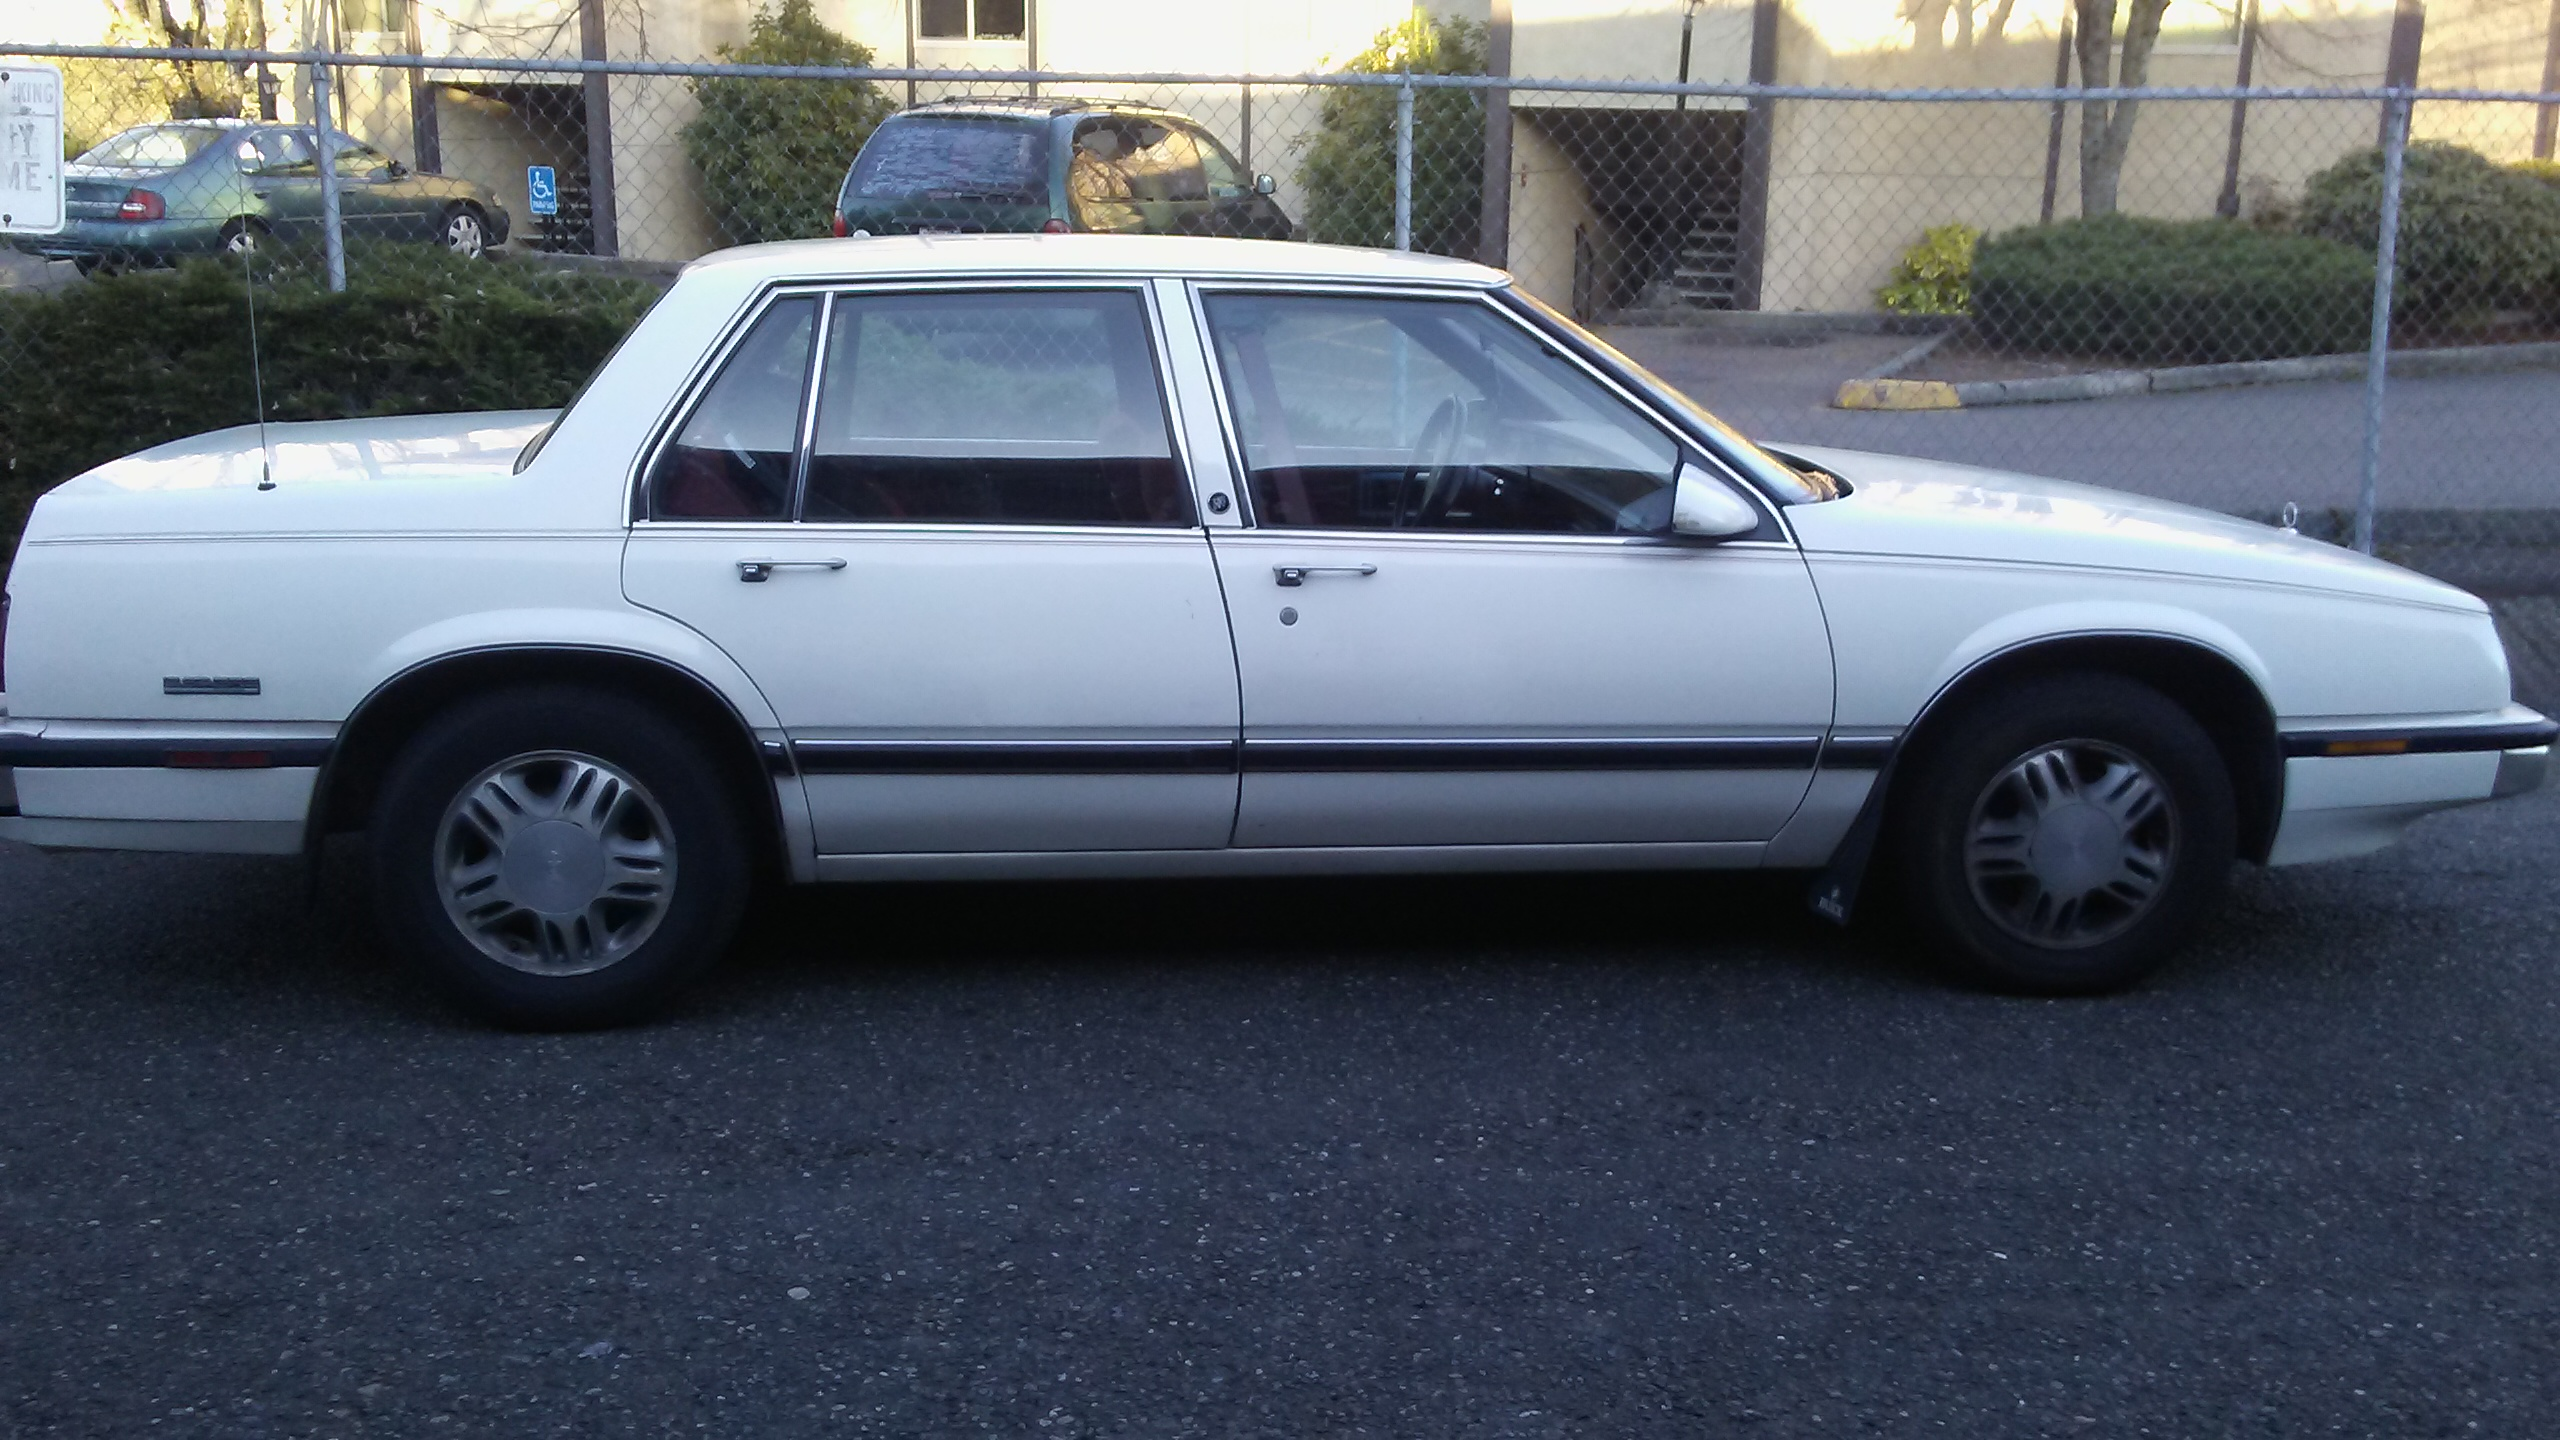 Cash for Cars Medford, OR | Sell Your Junk Car | The Clunker Junker